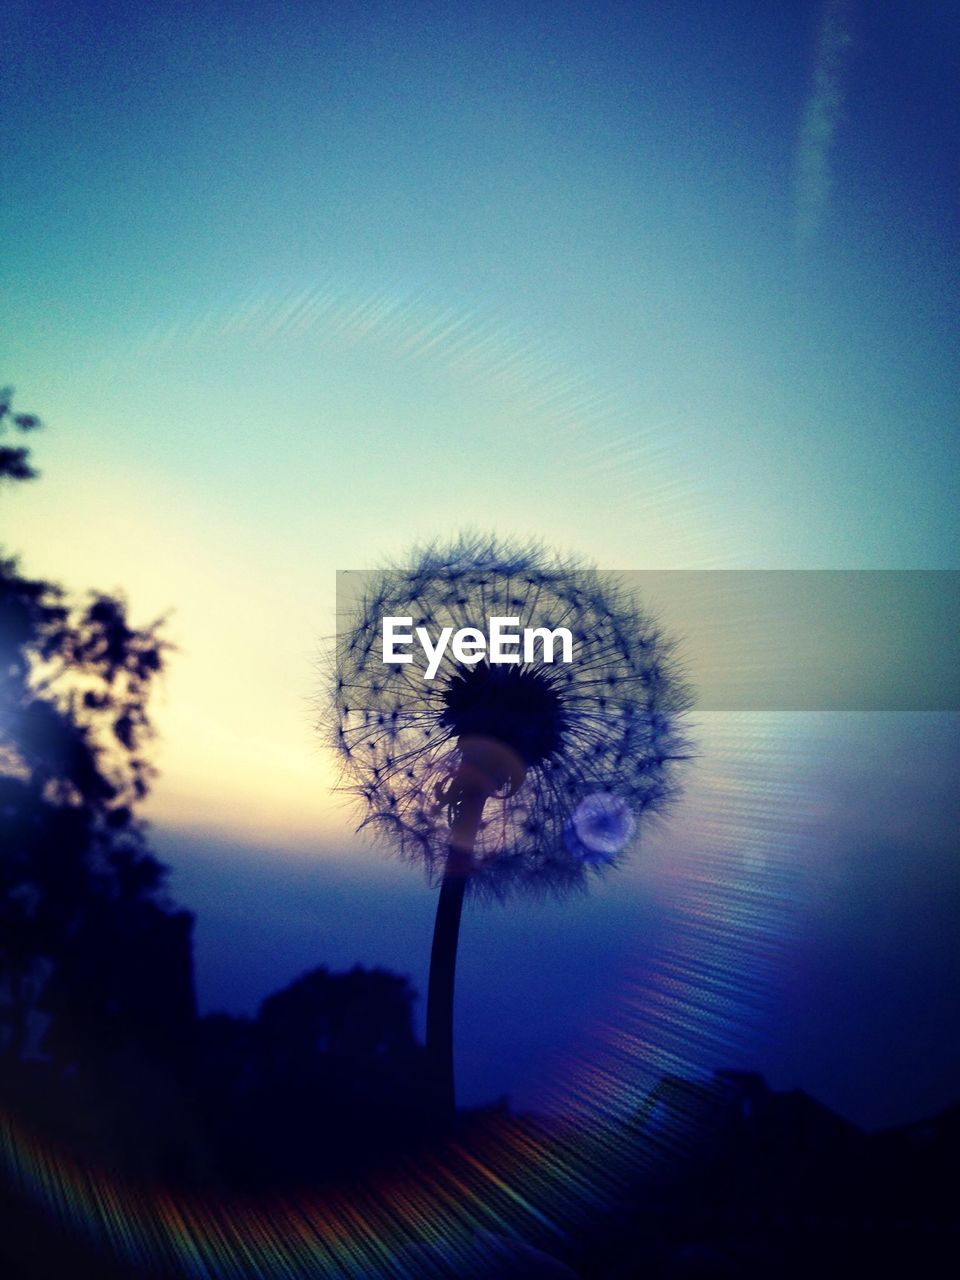 sky, nature, plant, no people, beauty in nature, tranquility, tree, growth, blue, silhouette, freshness, close-up, sunset, cloud - sky, dandelion, outdoors, flower, flowering plant, dusk, tranquil scene, flower head